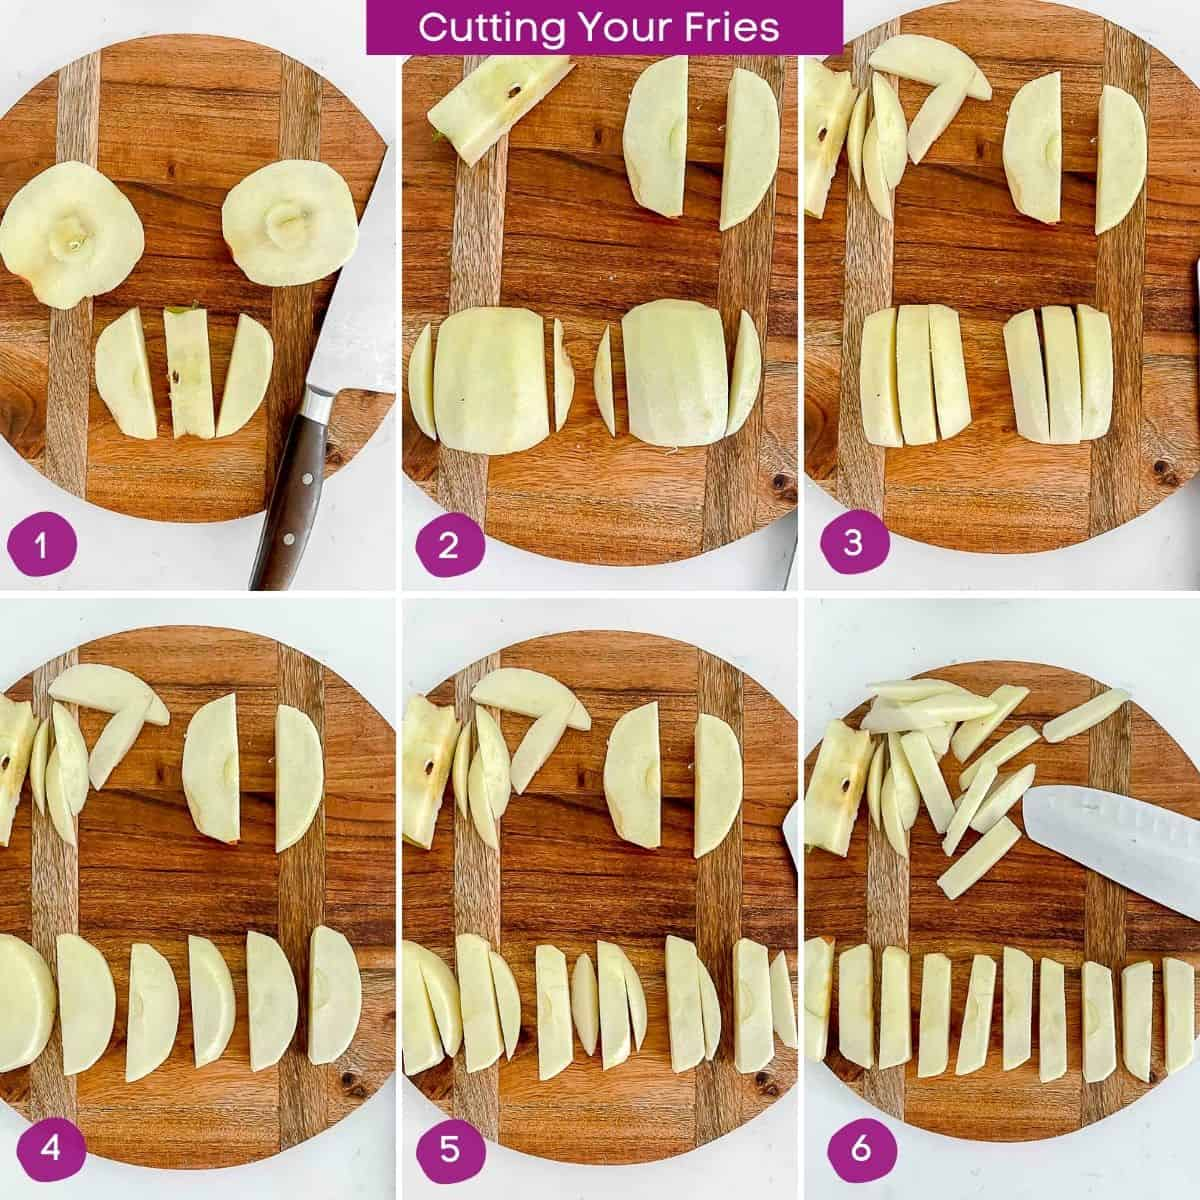 Steps showing how to cut apple fries on cutting board.